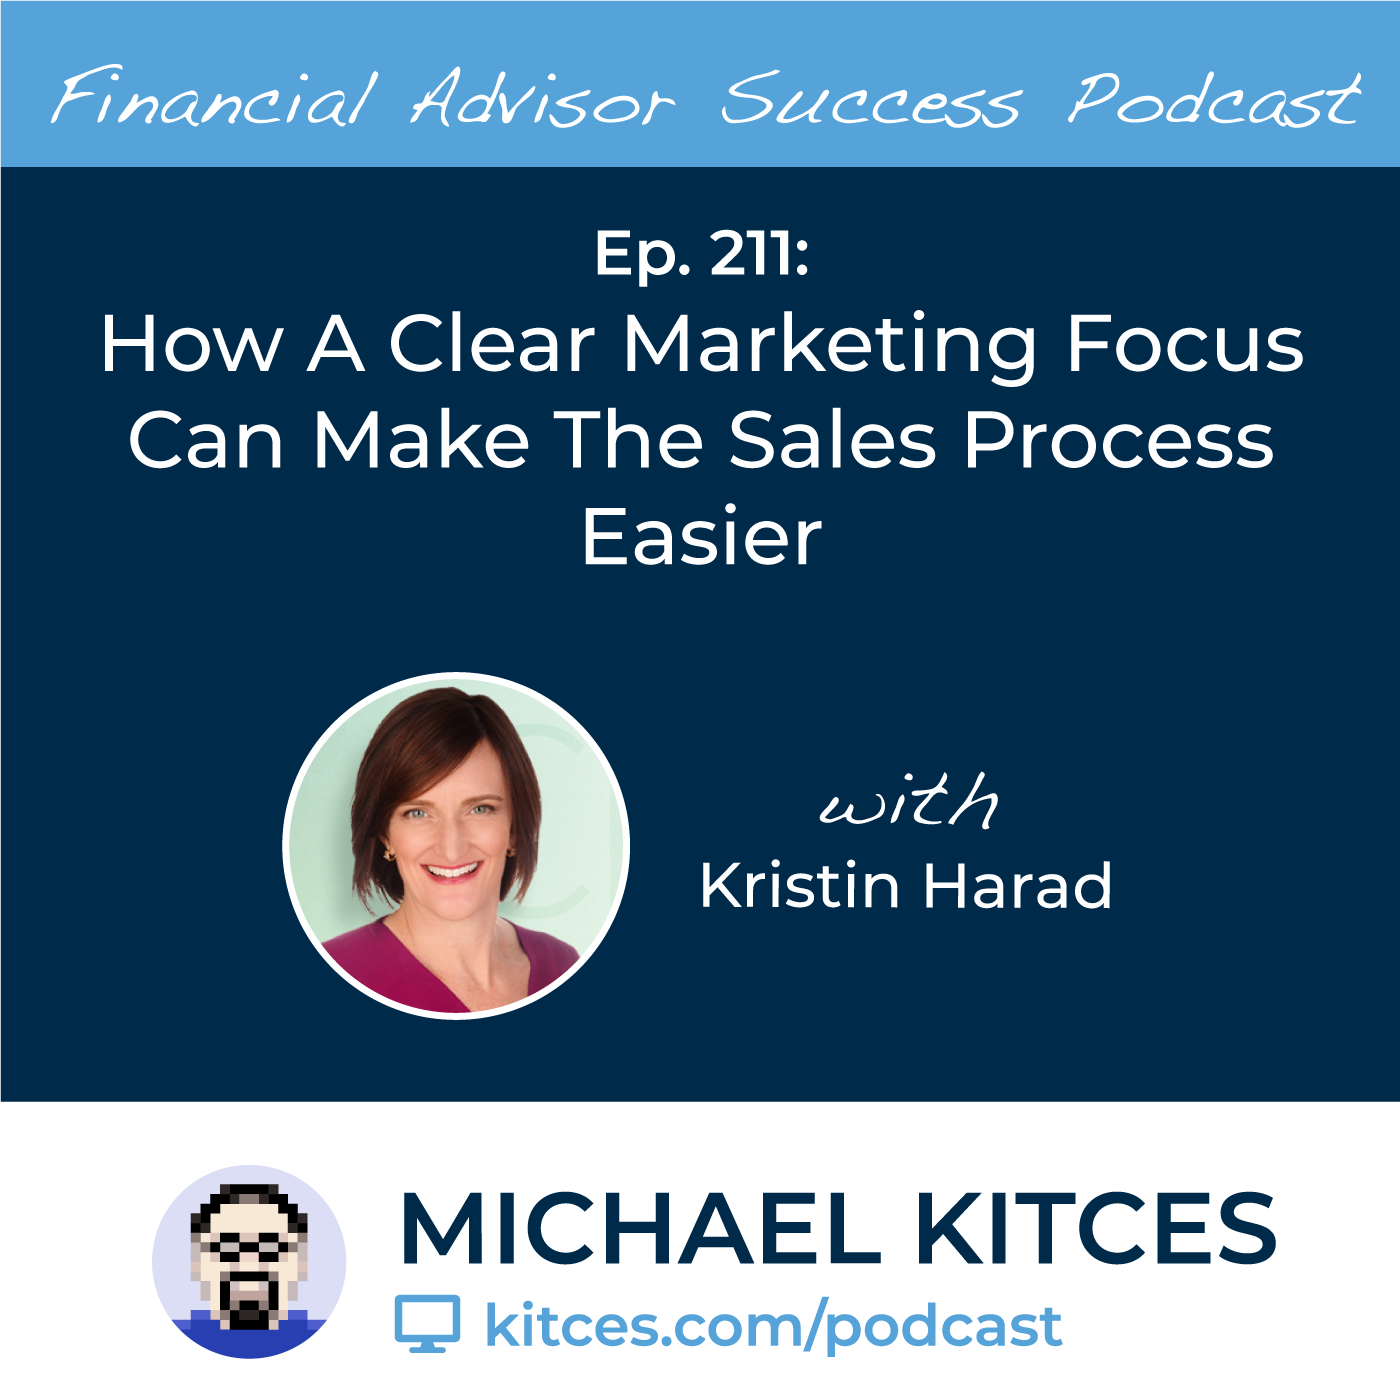 Ep 211: How A Clear Marketing Focus Can Make The Sales Process Easier with Kristin Harad